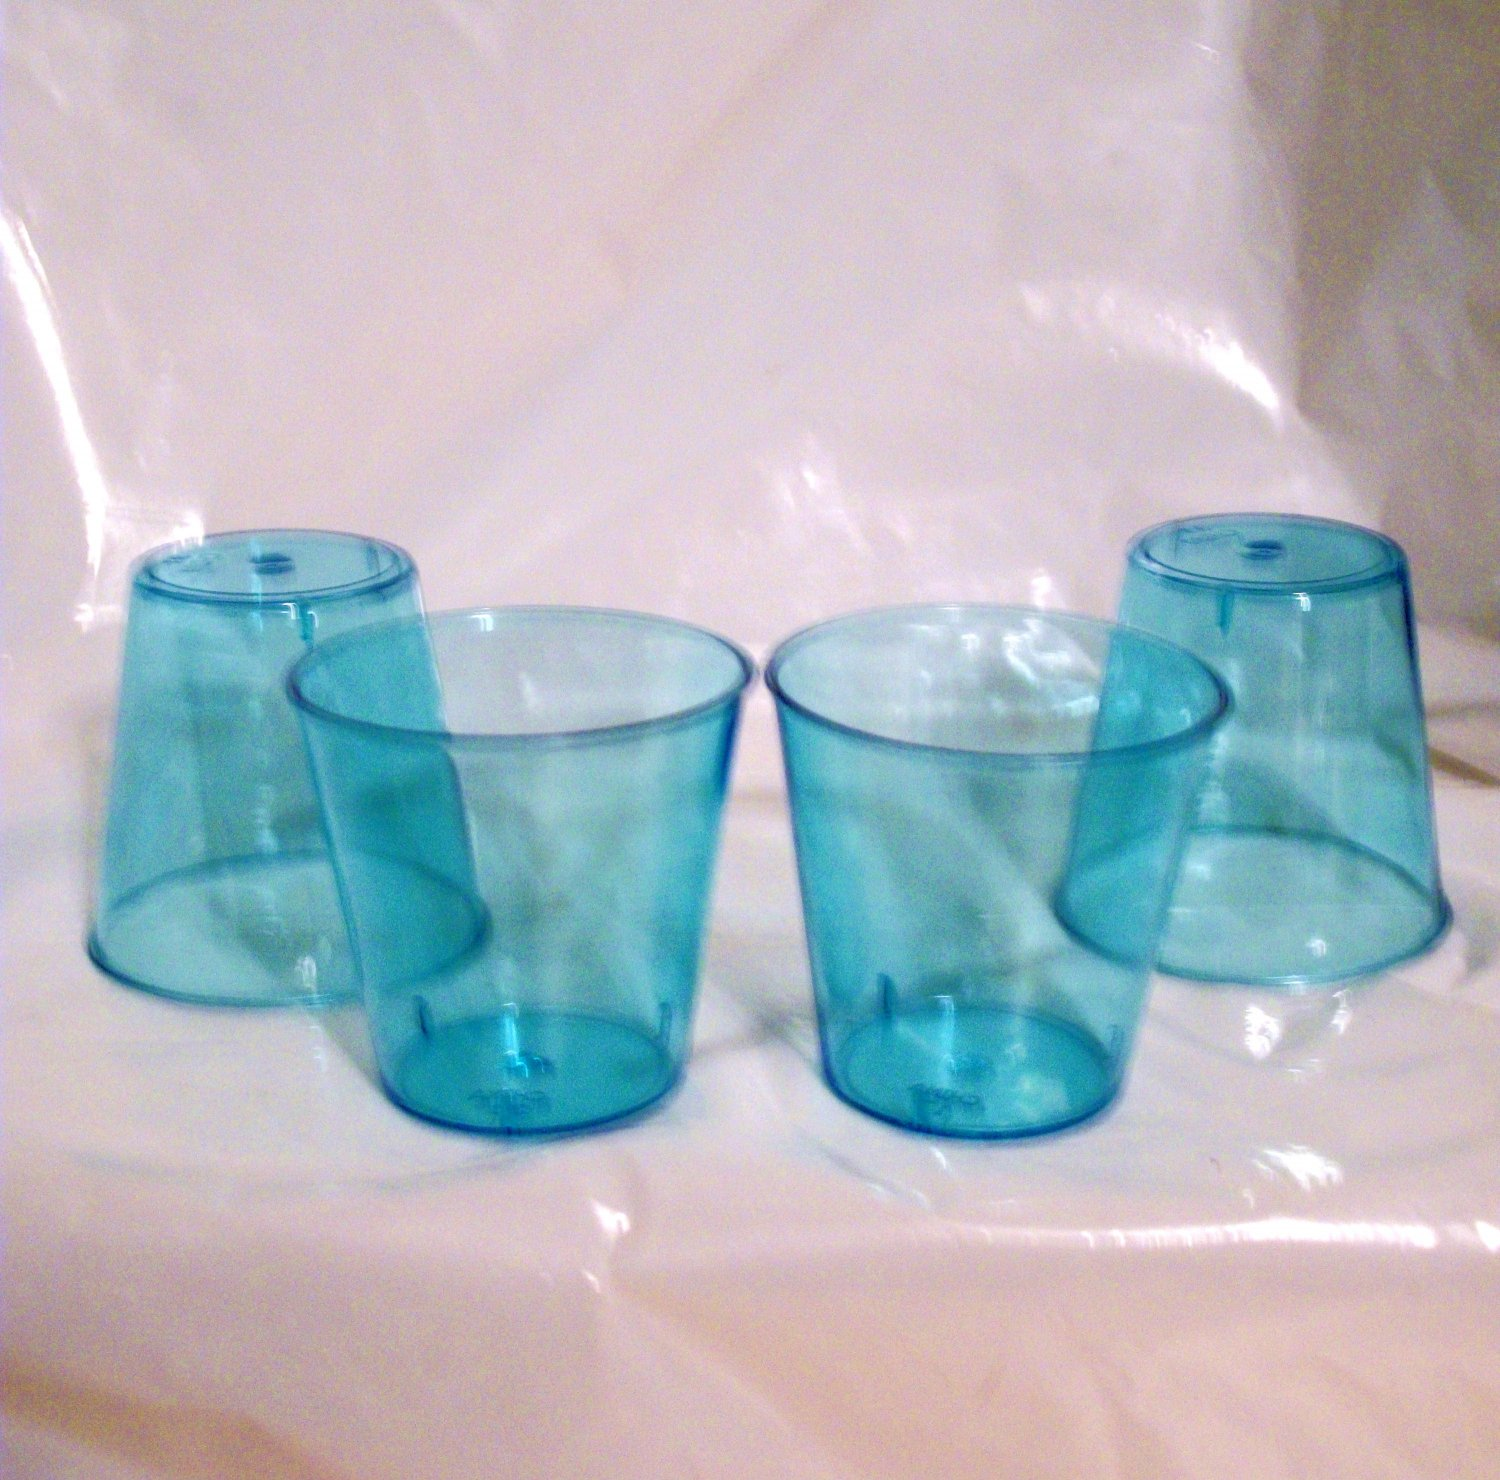 AMERICAN GIRL 18 INCH DOLL ACCESSORY-SET OF 4 GLASSES.